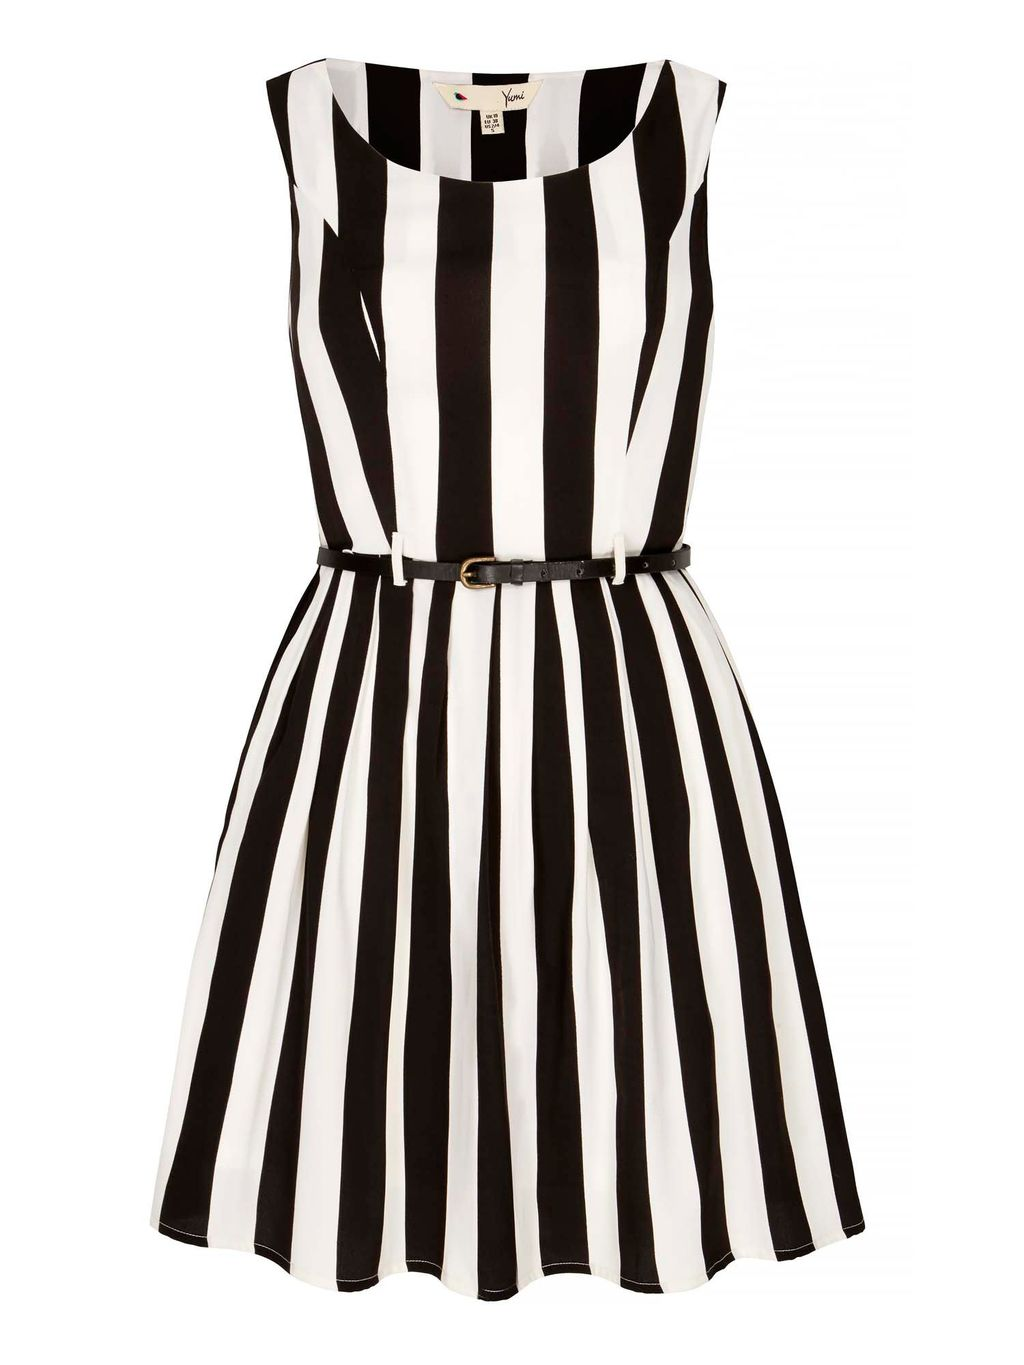 Stripe Print Skater Dress, Multi Coloured - length: mid thigh; neckline: round neck; sleeve style: sleeveless; pattern: striped; secondary colour: white; predominant colour: black; occasions: evening; fit: fitted at waist & bust; style: fit & flare; fibres: polyester/polyamide - 100%; sleeve length: sleeveless; trends: monochrome, graphic stripes; pattern type: fabric; pattern size: light/subtle; texture group: other - light to midweight; season: s/s 2016; wardrobe: event